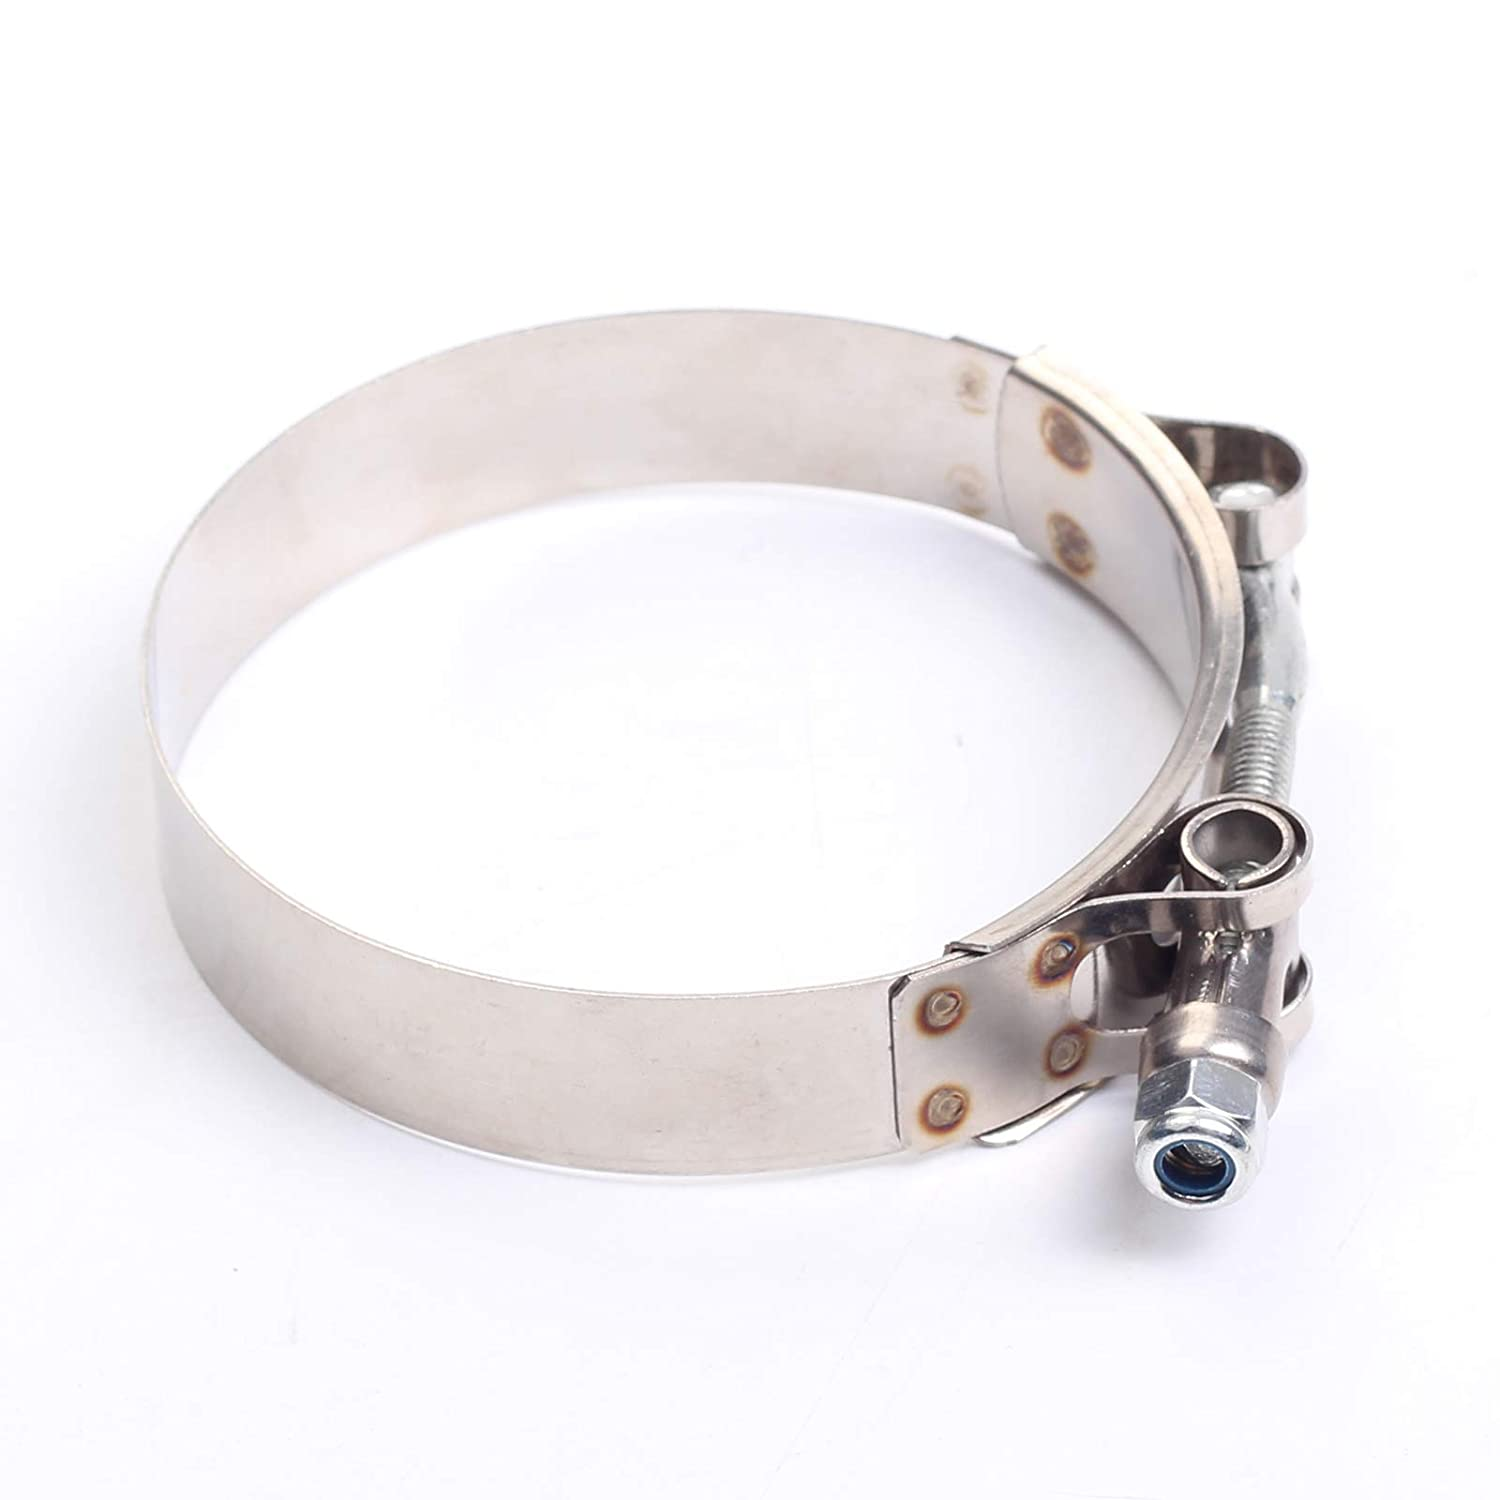 43mm Stainless Steel T-Bolt Clamps Turbo Intake Intercooler Clamp for 1-3//16 Hose 10PCS 38mm